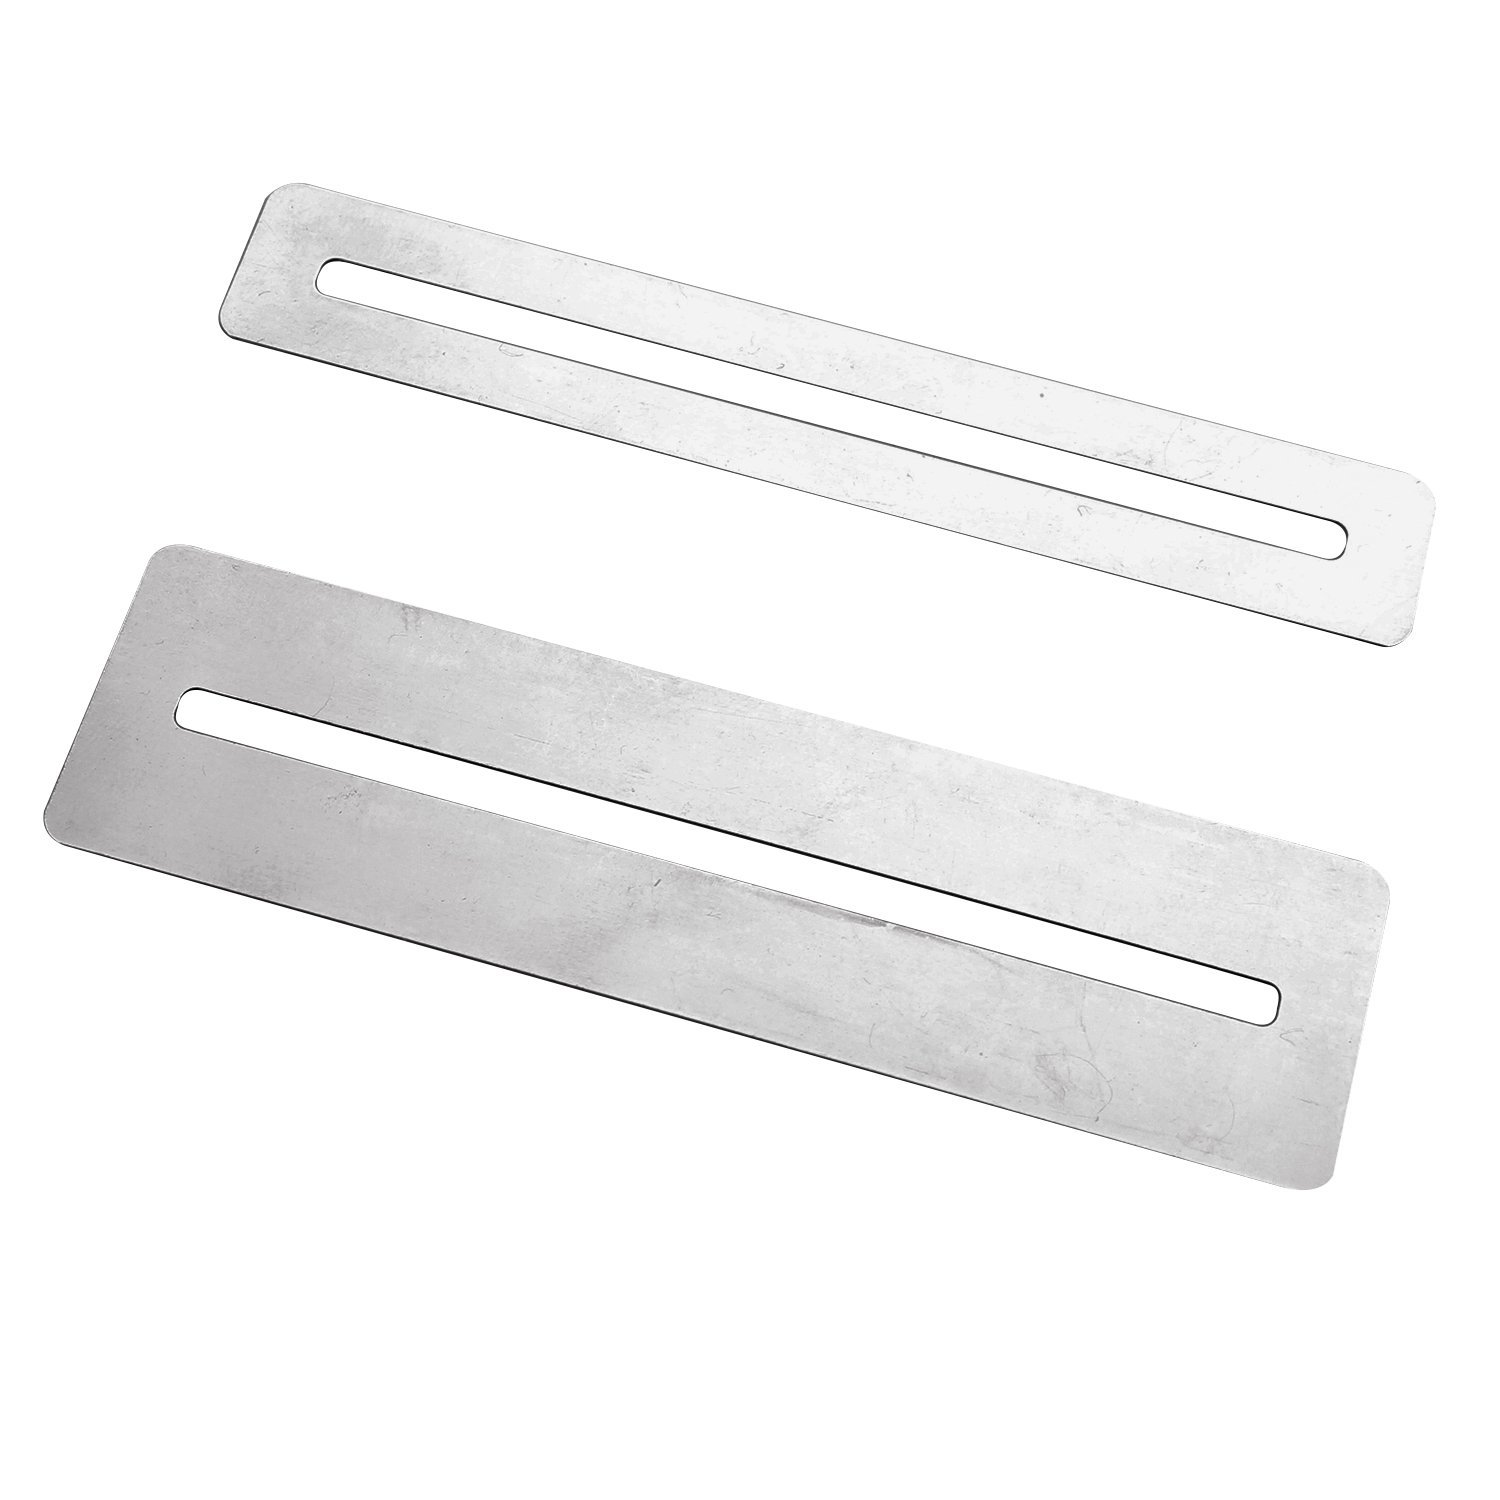 Pack of 2 Stainless Steel Fretboard Protector Fingerboard Guards for Guitar Bass Luthier Tool FUSD